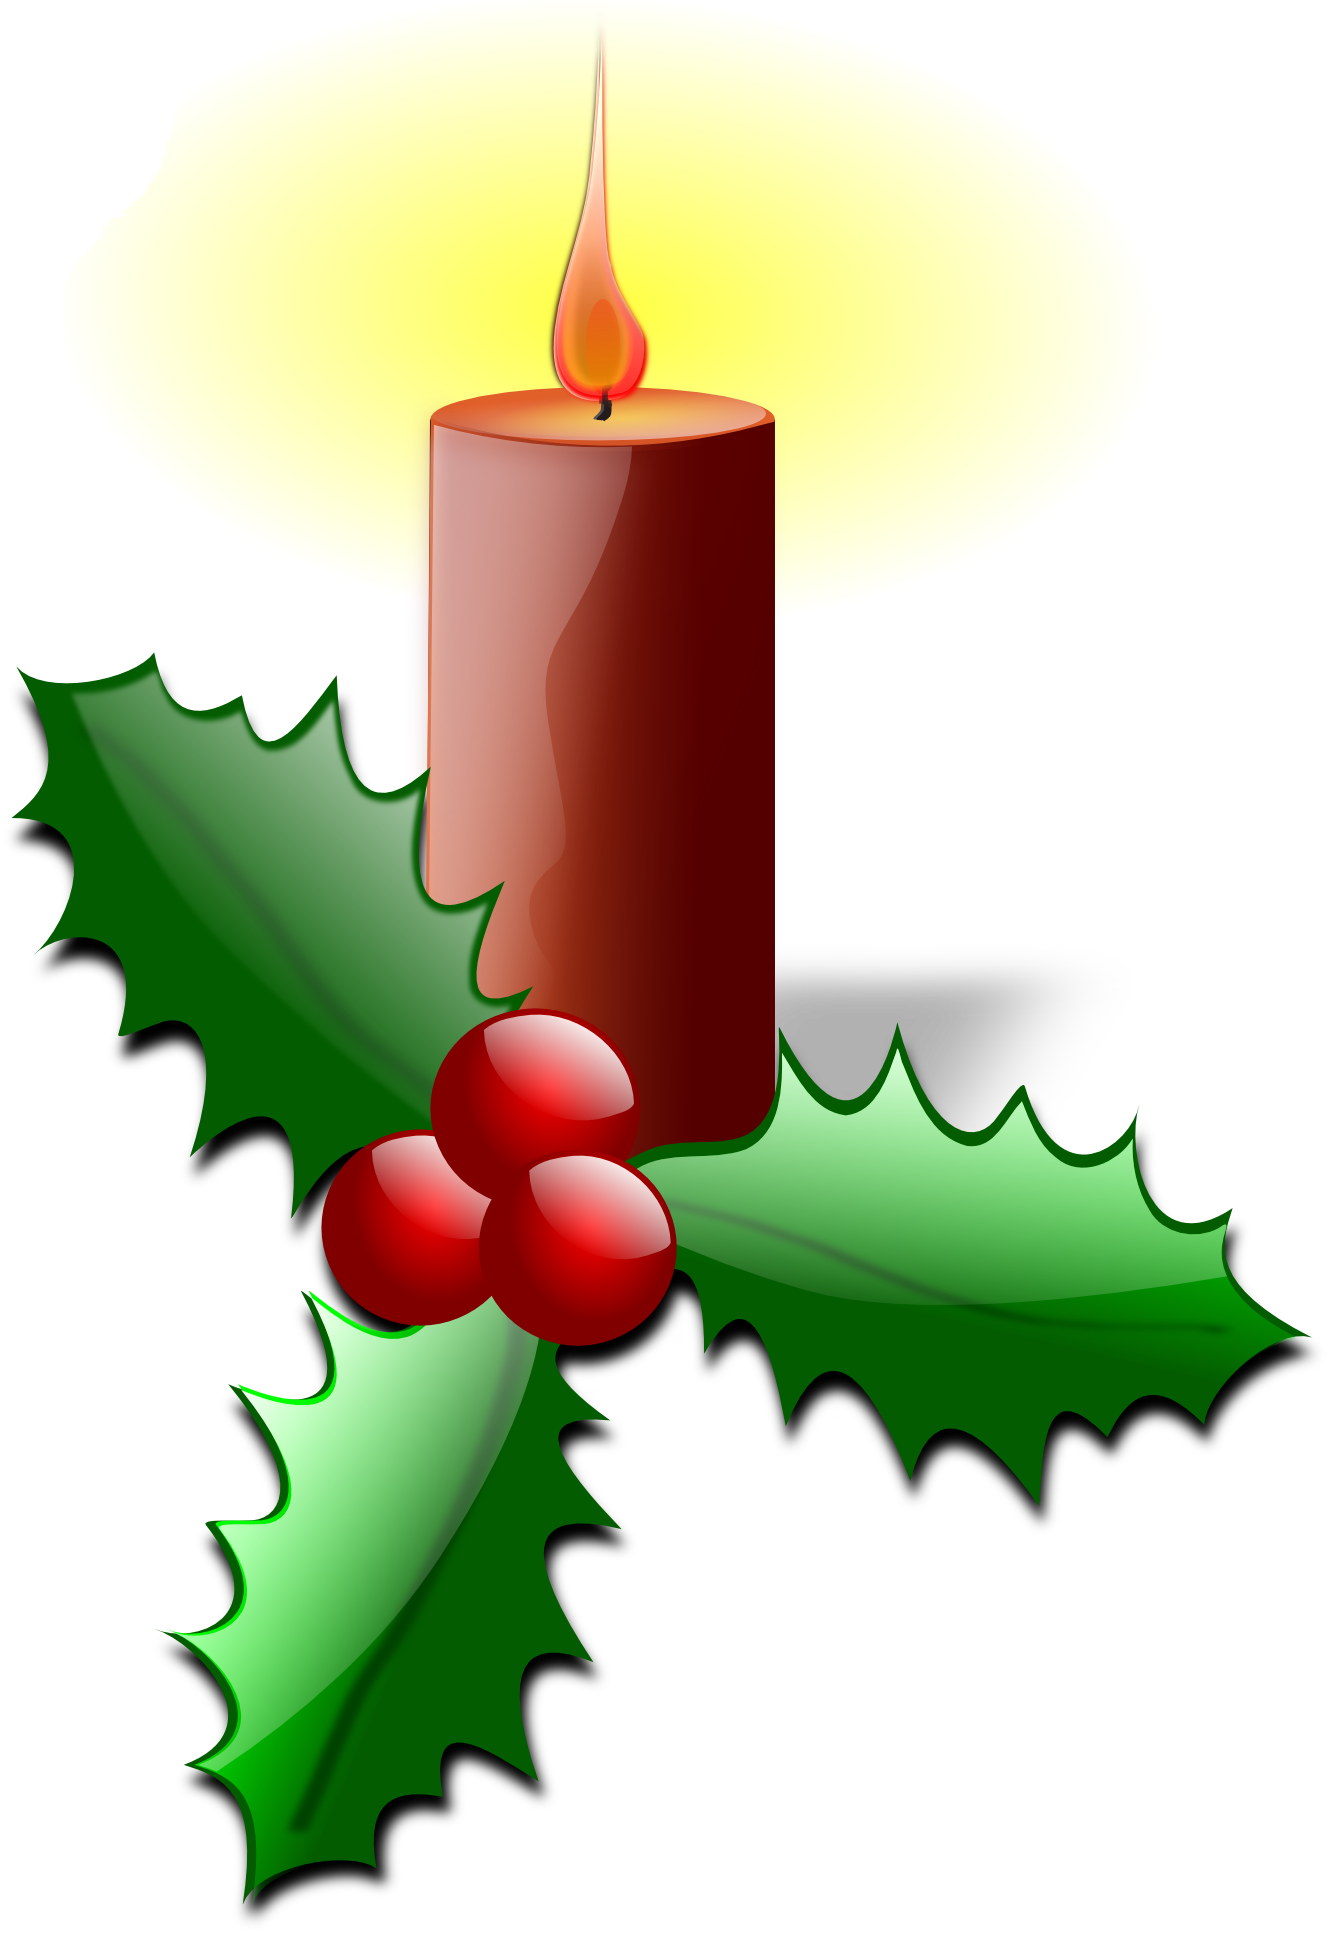 Christmas clipart holly jpg royalty free Clipart Of Christmas Stuff at GetDrawings.com | Free for personal ... jpg royalty free